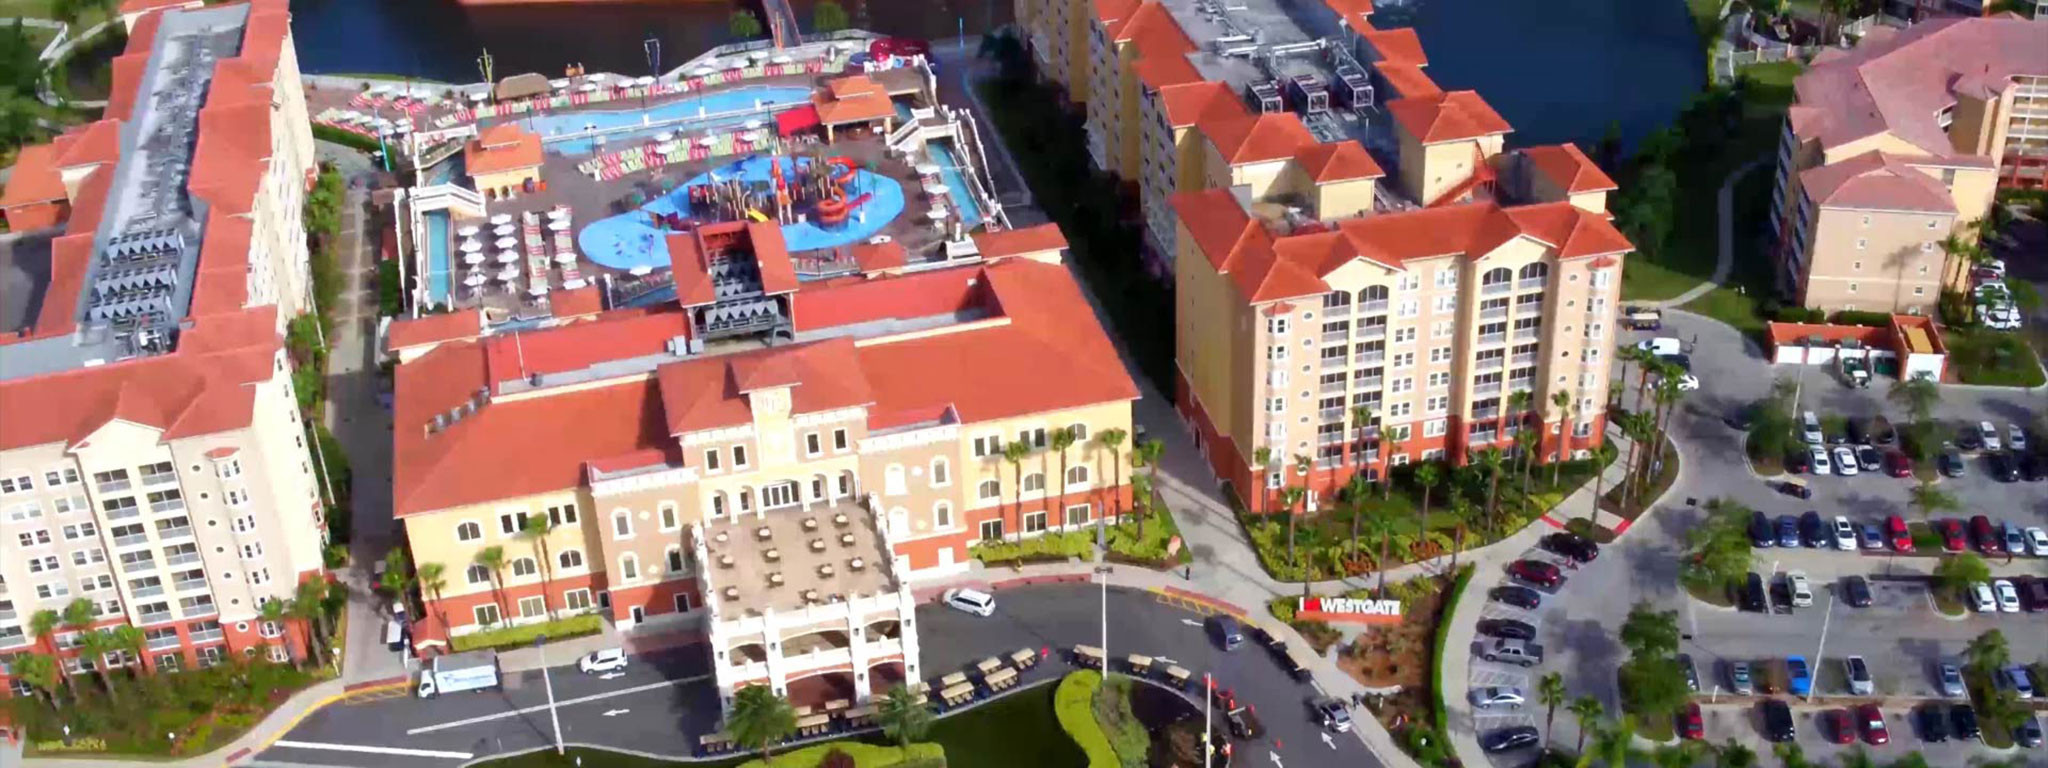 With a variety of accommodations and a multitude of onsite amenities (including 14 pools!), Westgate Town Center Resort & Spa is an ideal choice for Orlando, Florida family vacation.